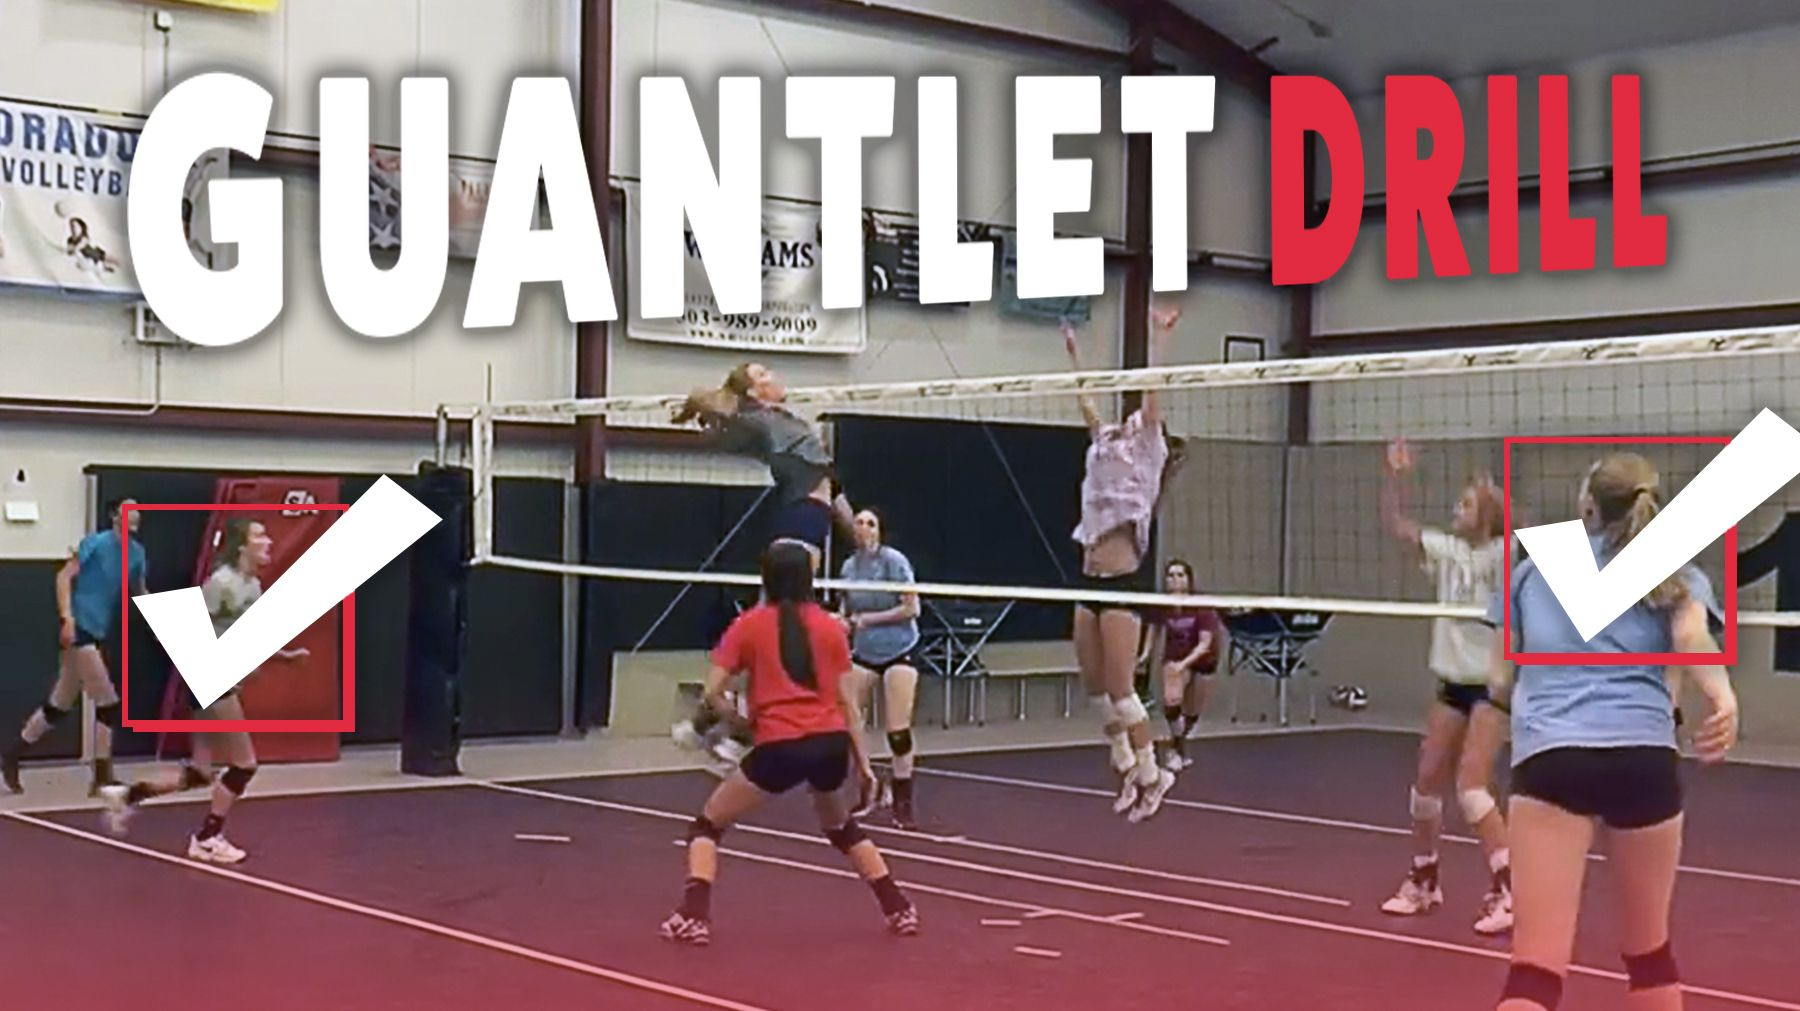 Gauntlet Drill For Setters The Art Of Coaching Volleyball Coaching Volleyball Volleyball Drills Volleyball Training